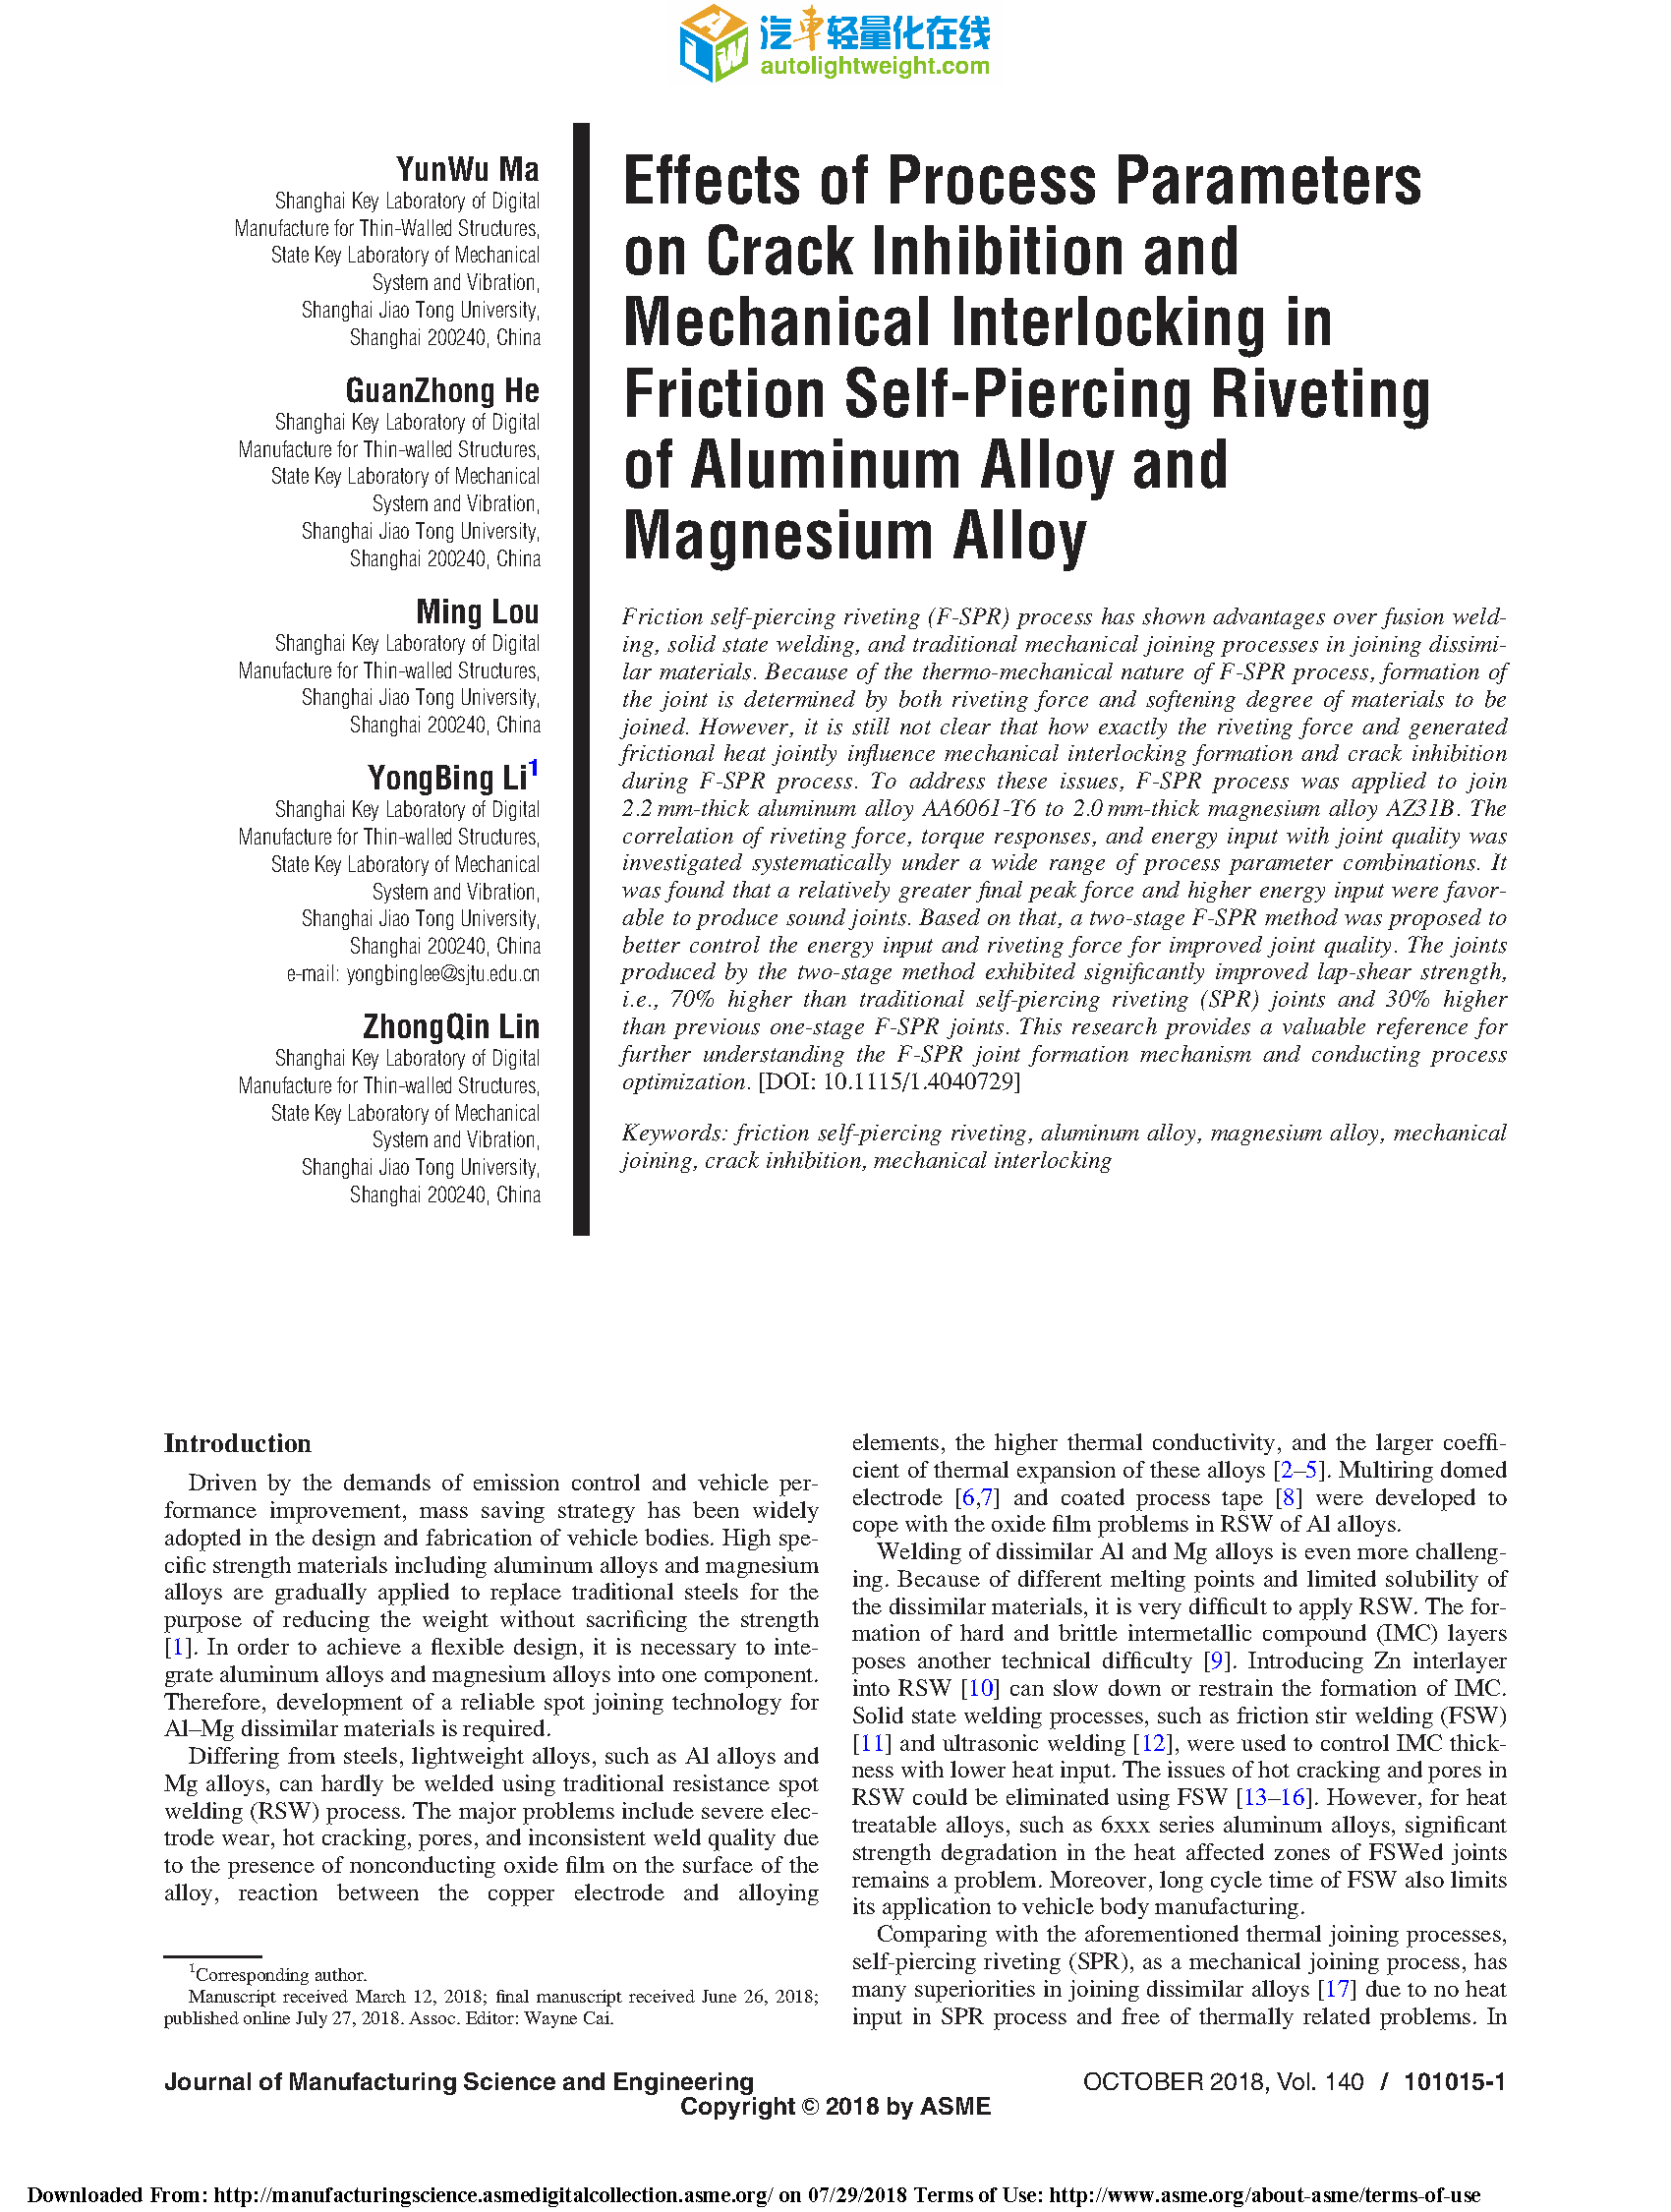 Effects of Process Parameters on Crack Inhibition and Mechanical Interlocking in.png